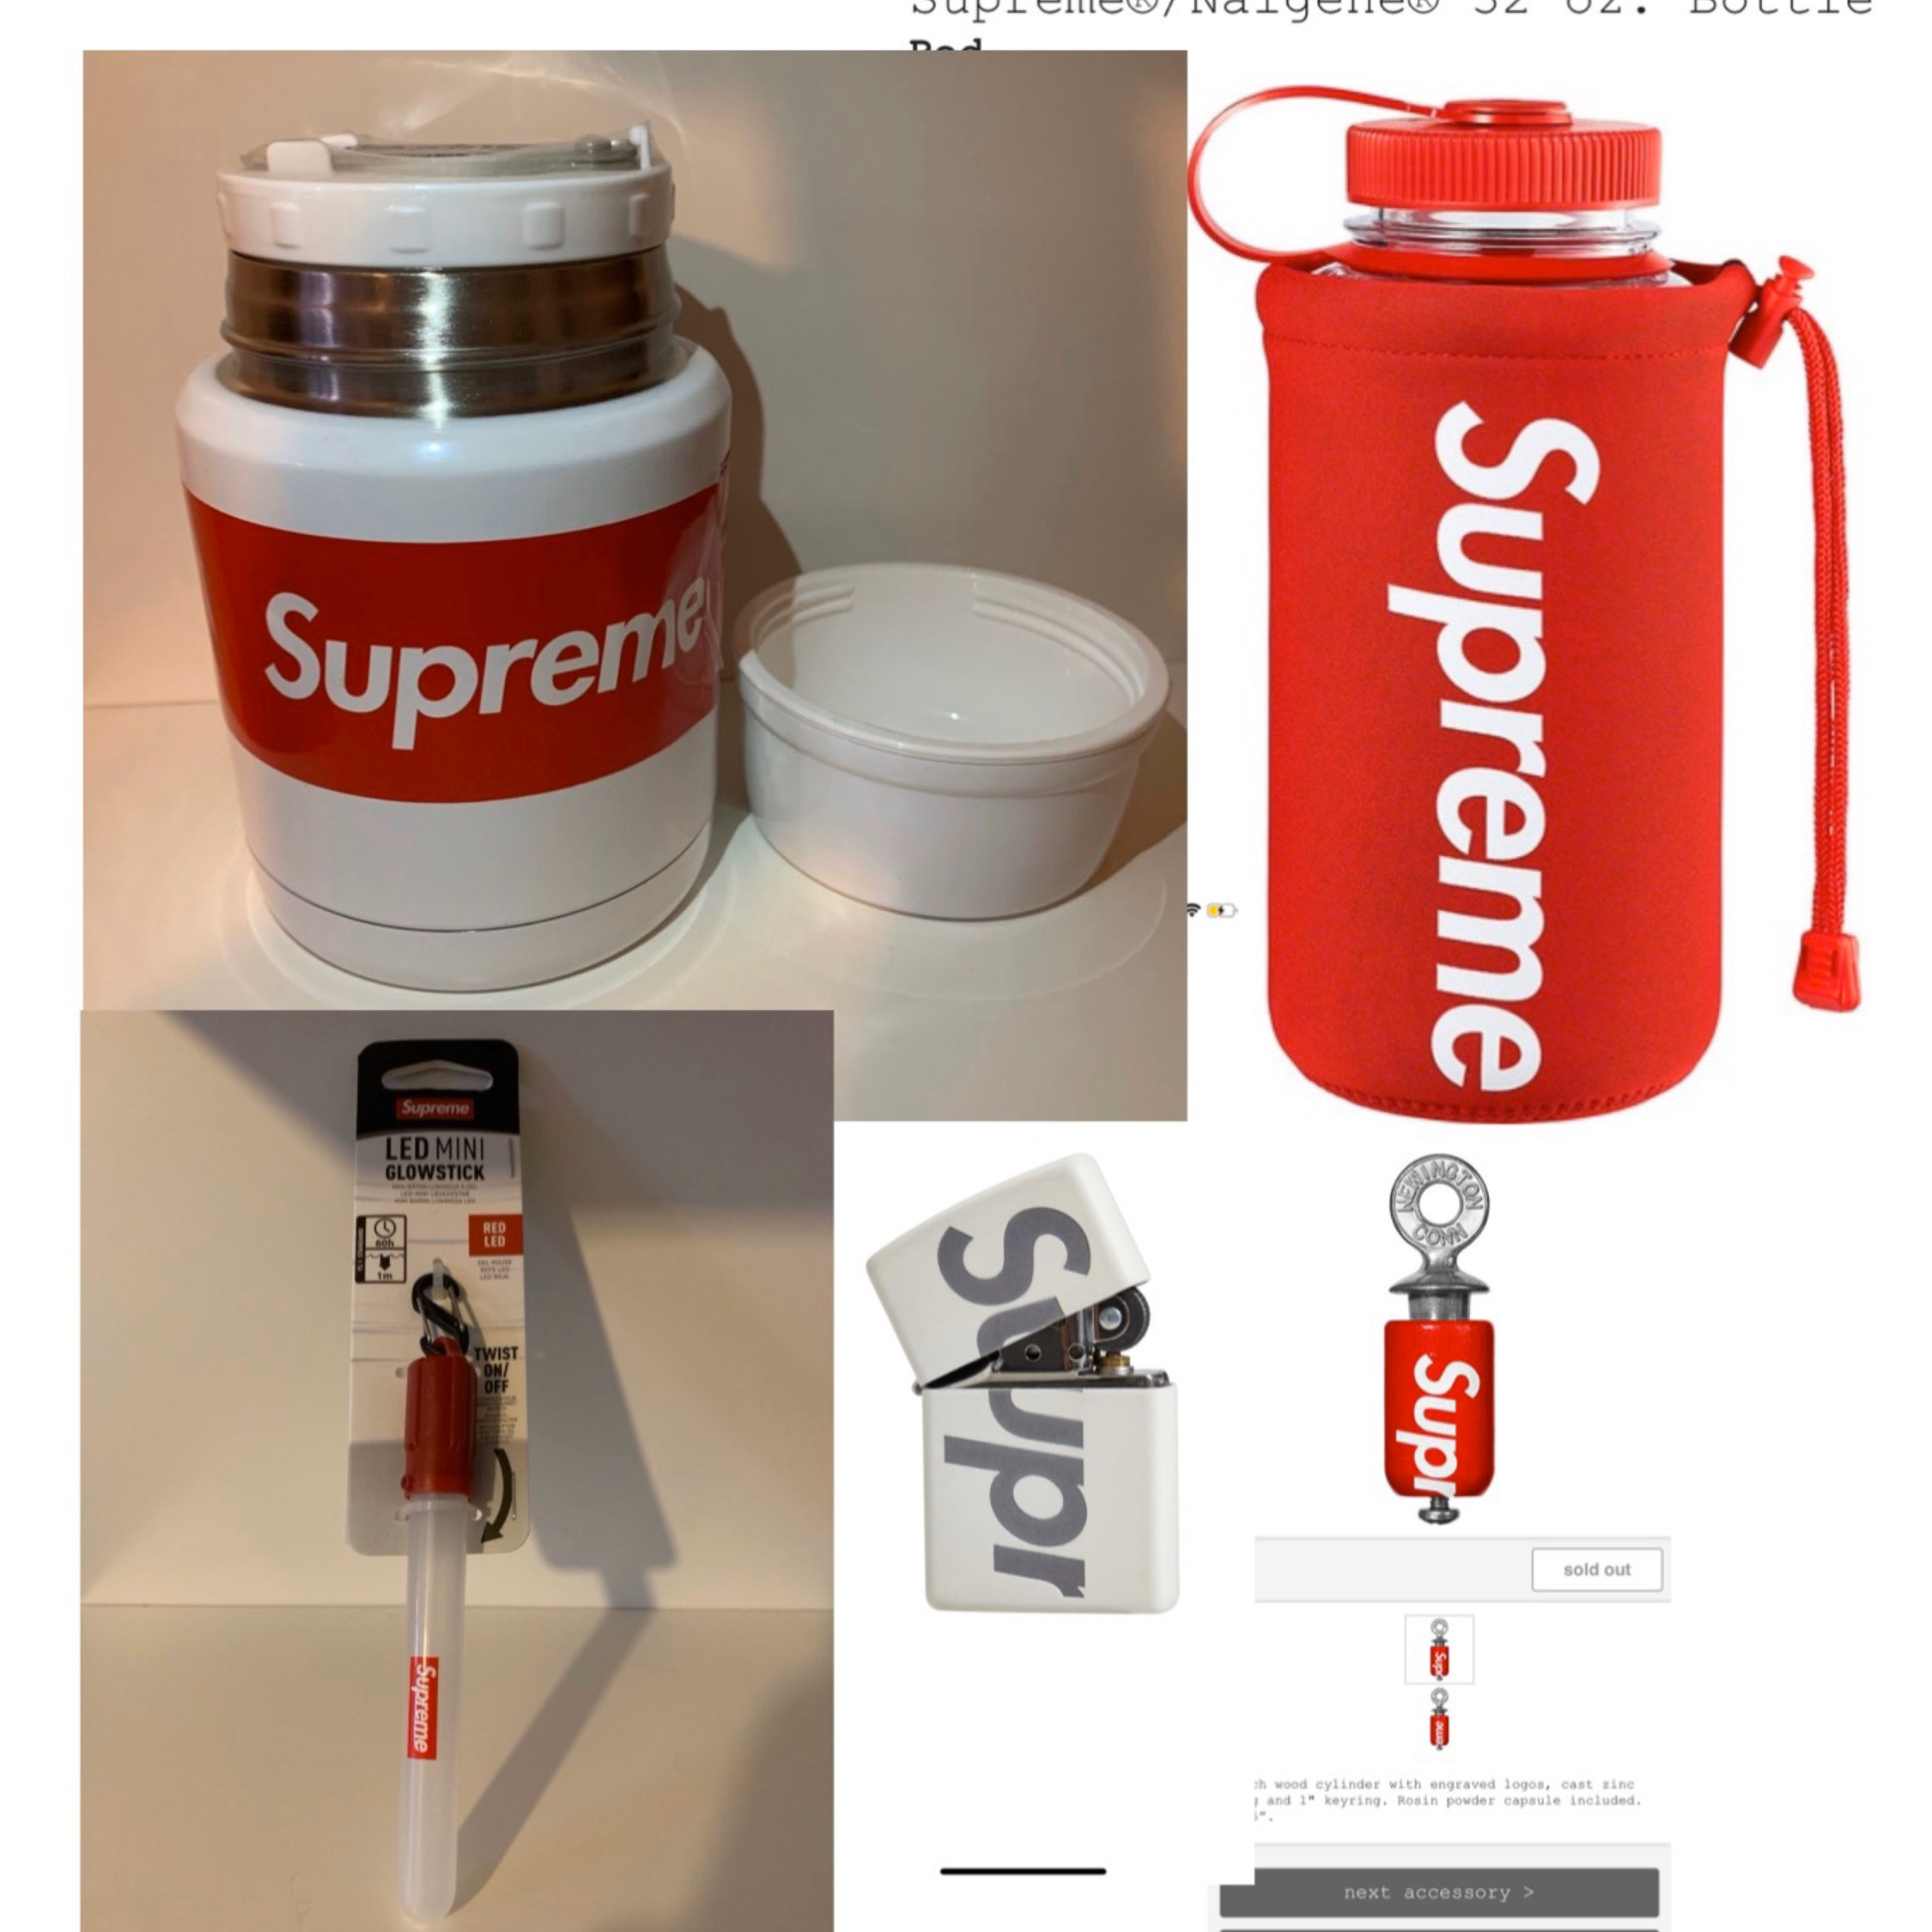 Supreme Accessories Bundle